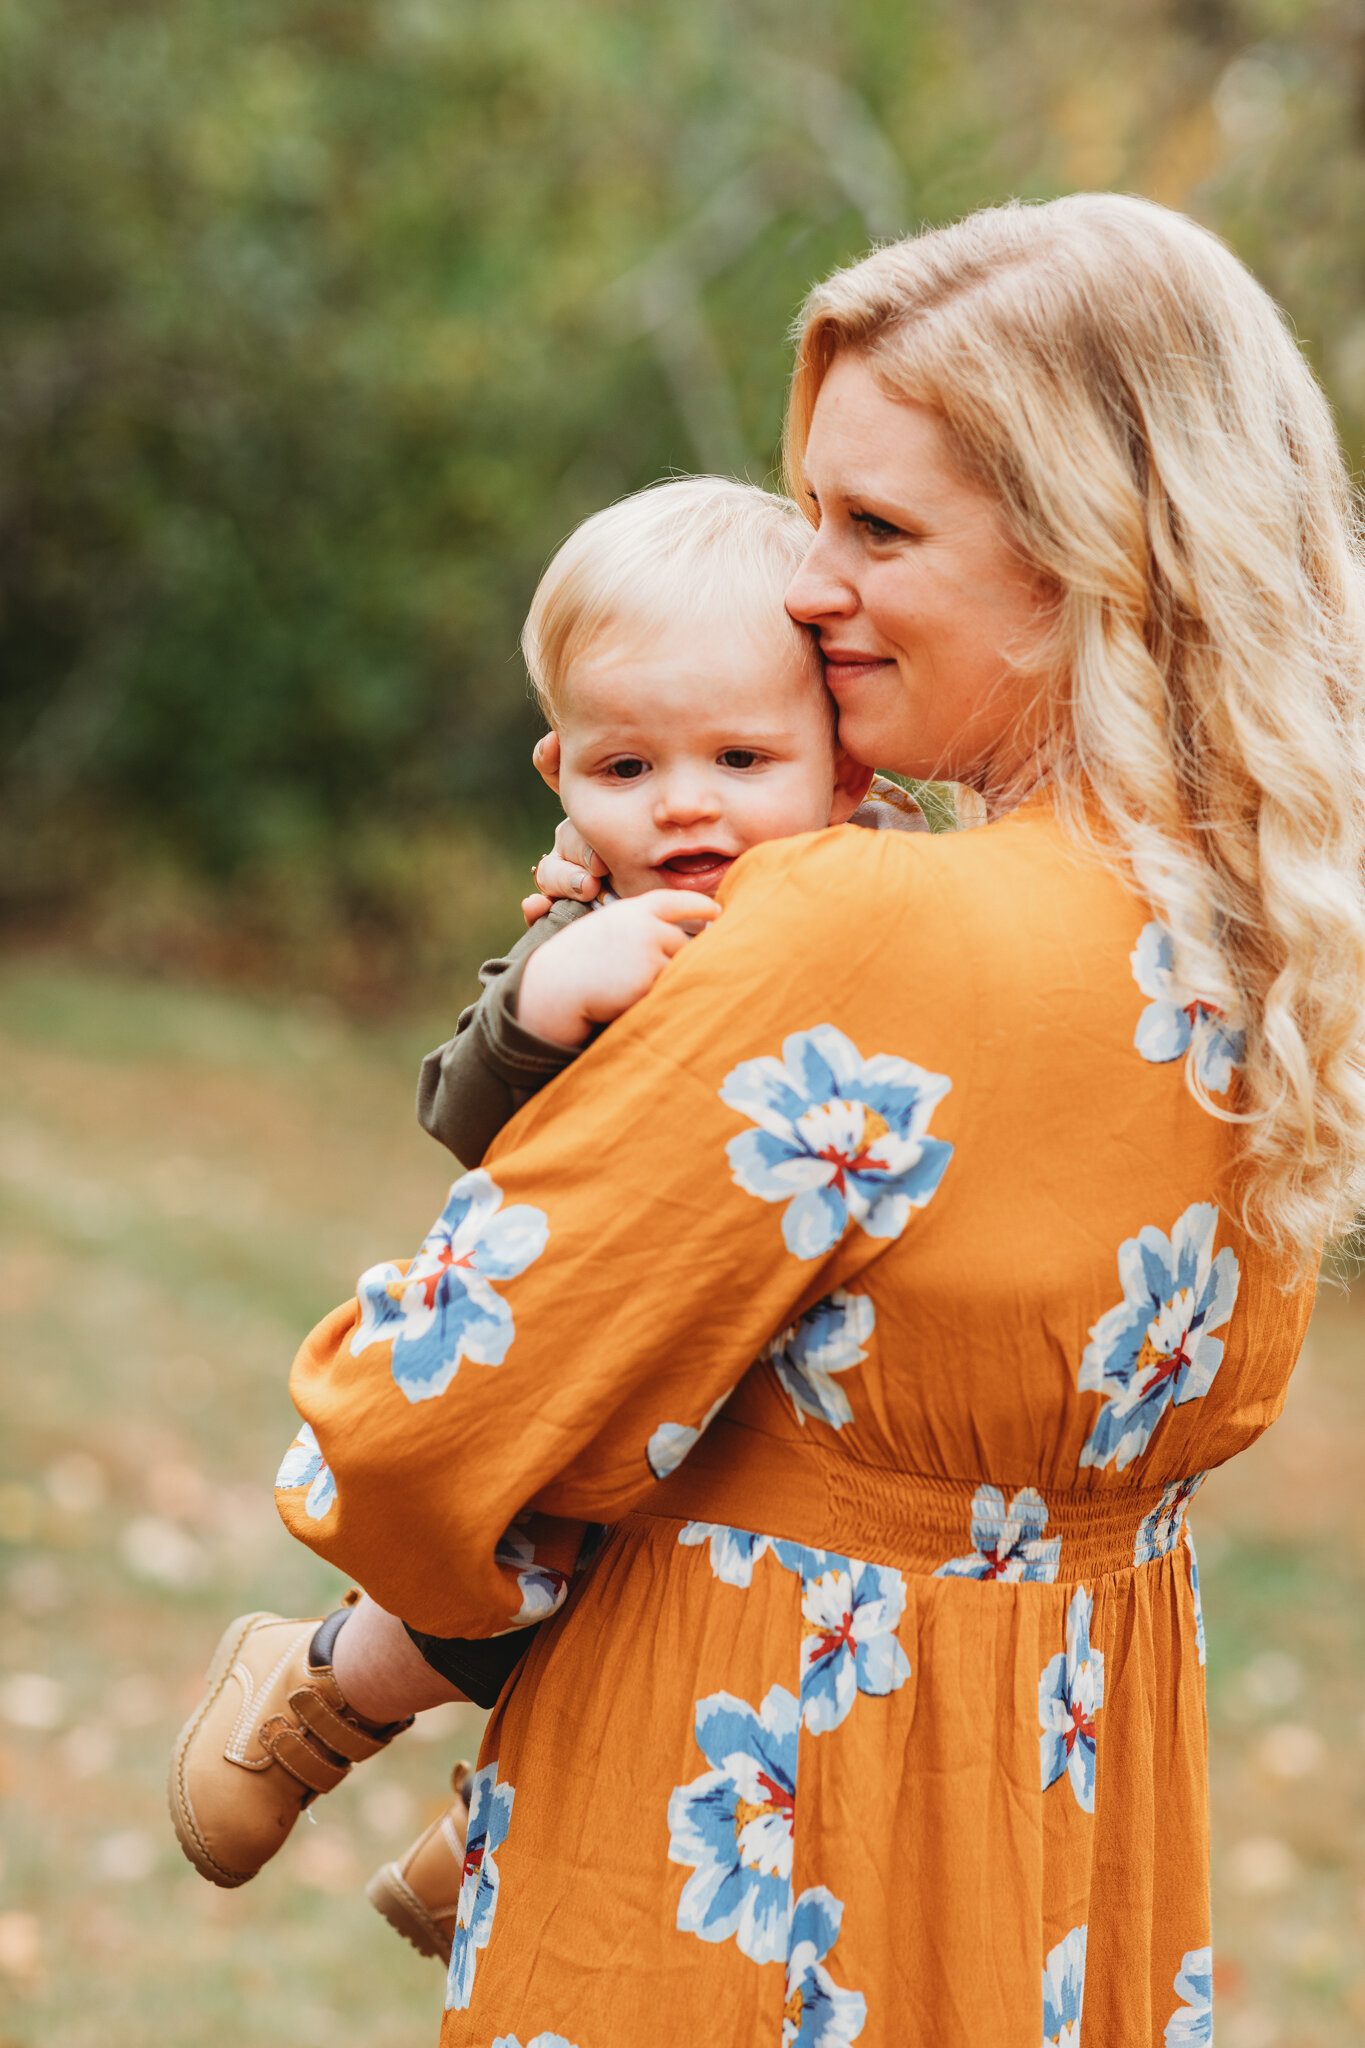 Beautiful Sudbury, Massachusetts mom wearing an orange dress and holding her one-year-old son during their fall family photography session. How to score a coveted autumn foliage photography session.